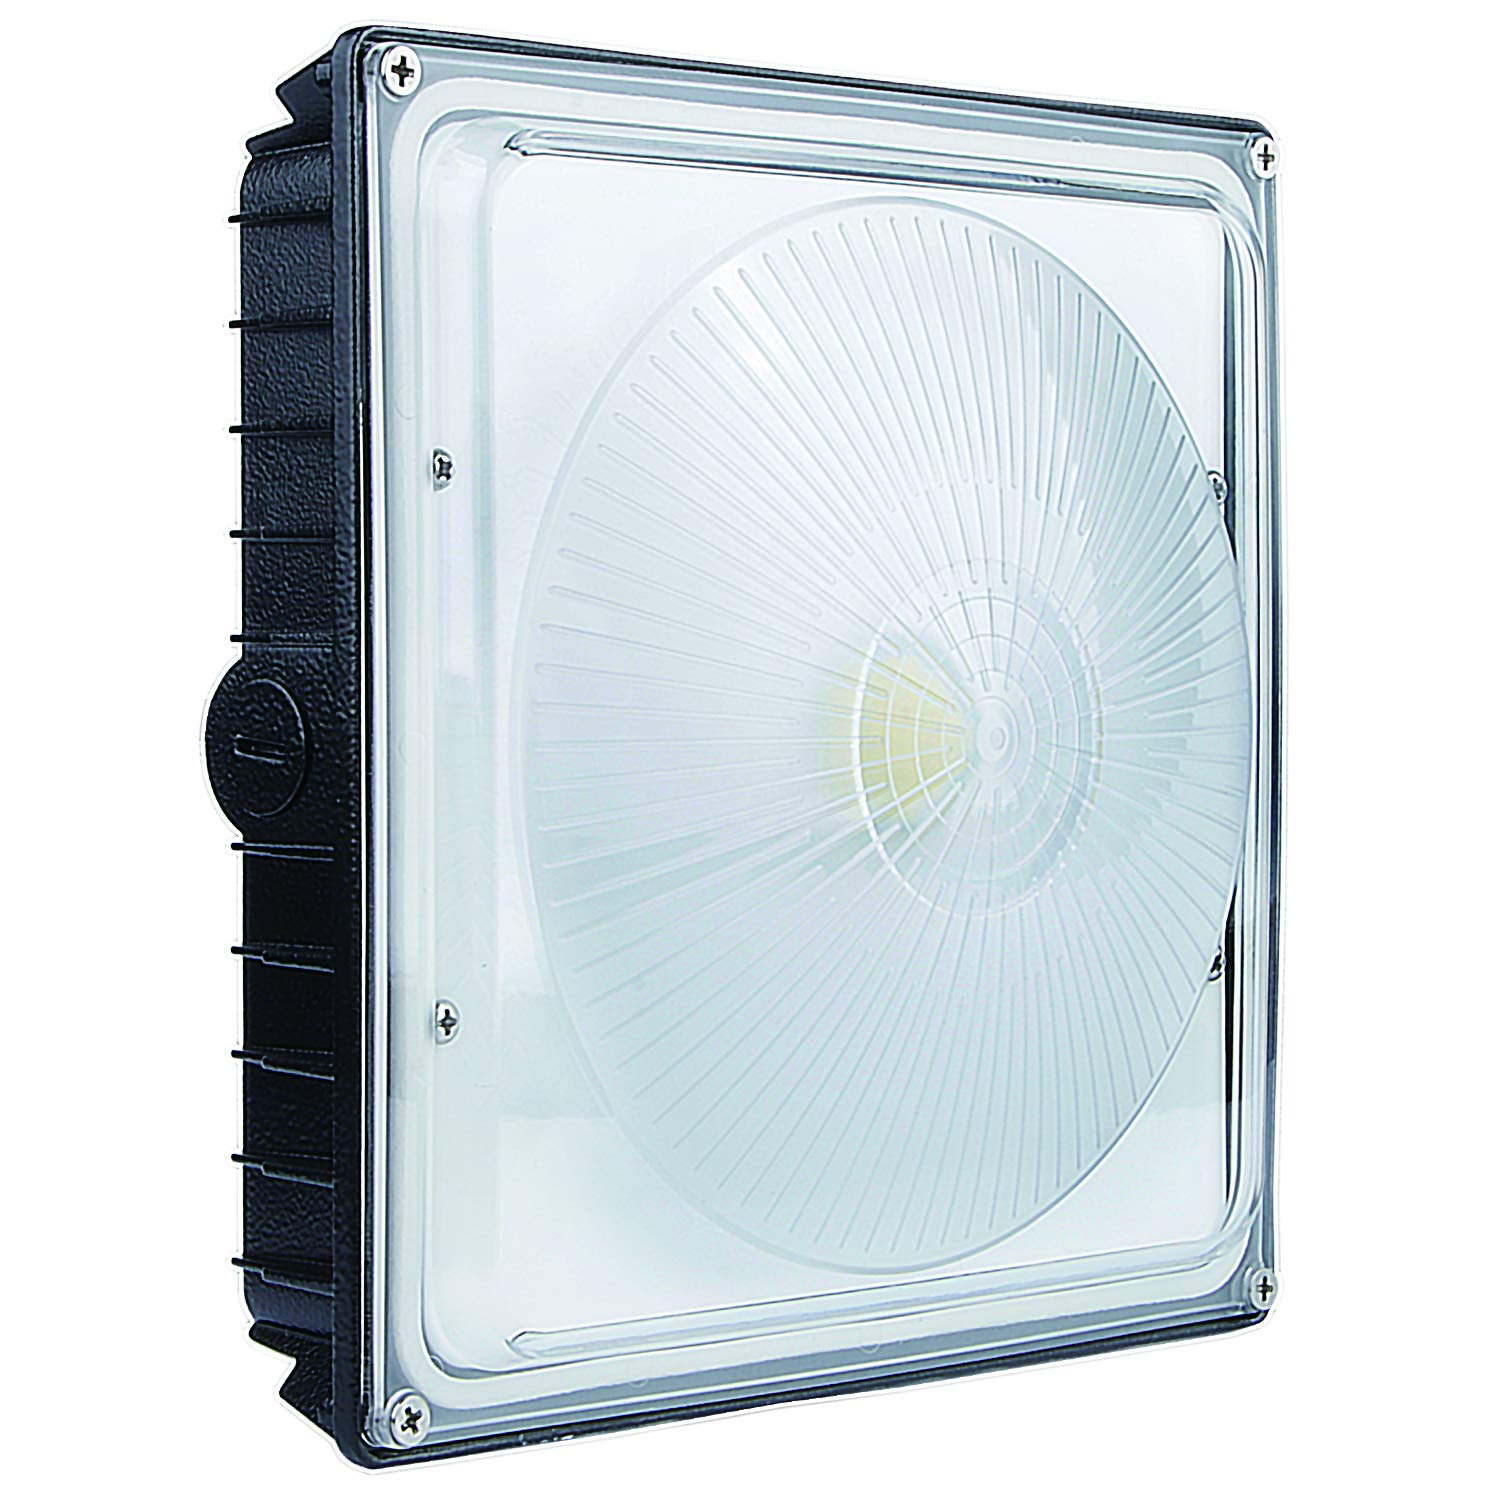 LED Canopy Light - Speclux 70W (350W Hps/HID Equivalent) 5000k Daylight White, 8000 Lumens, UL Listed and DLC Qualified, Commercial Lighting for Gas Station, Parking Garage, AC100-277V